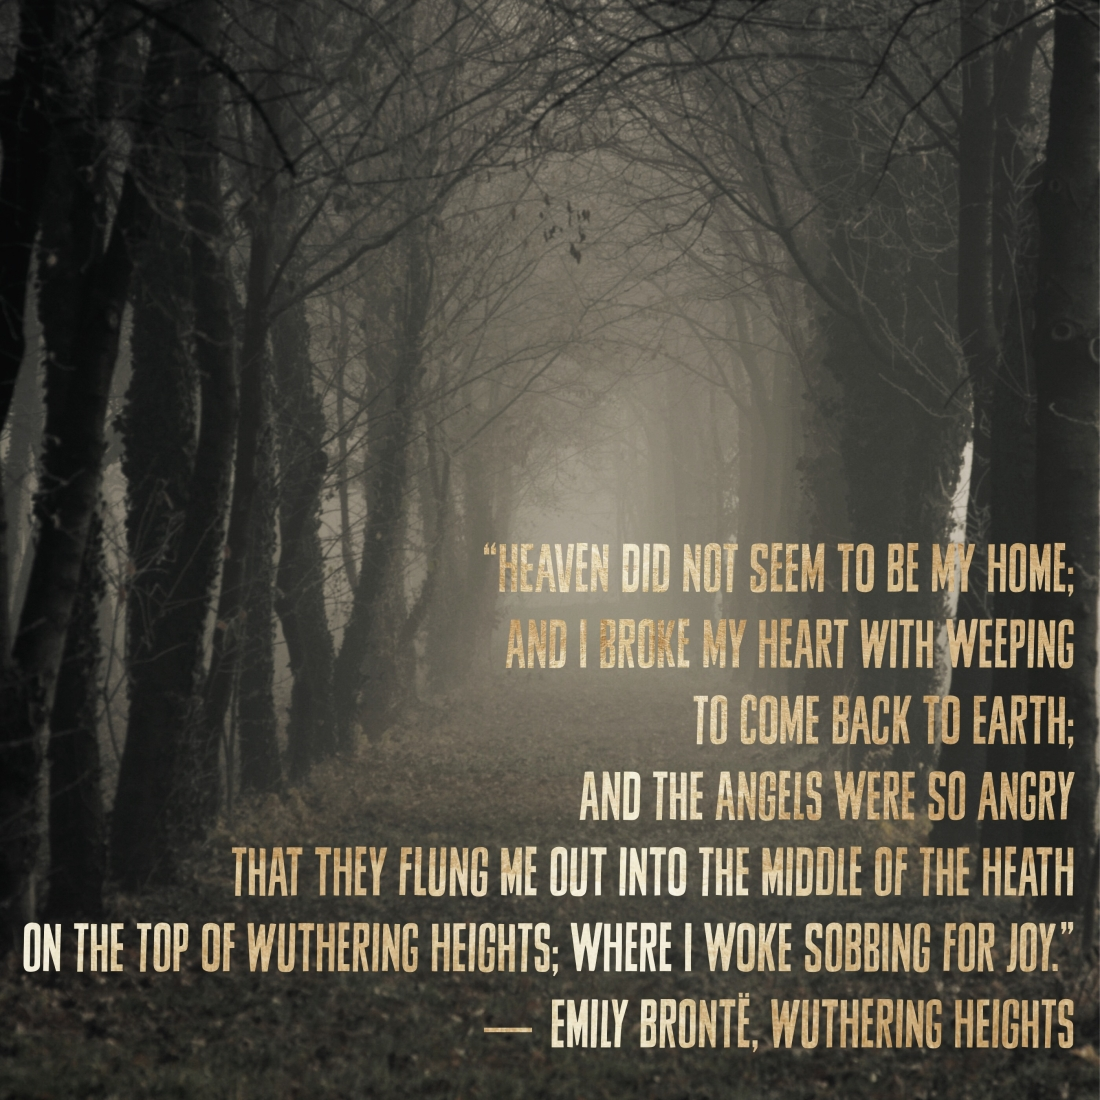 quote, emily bronte wuthering heights, heaven, fog,